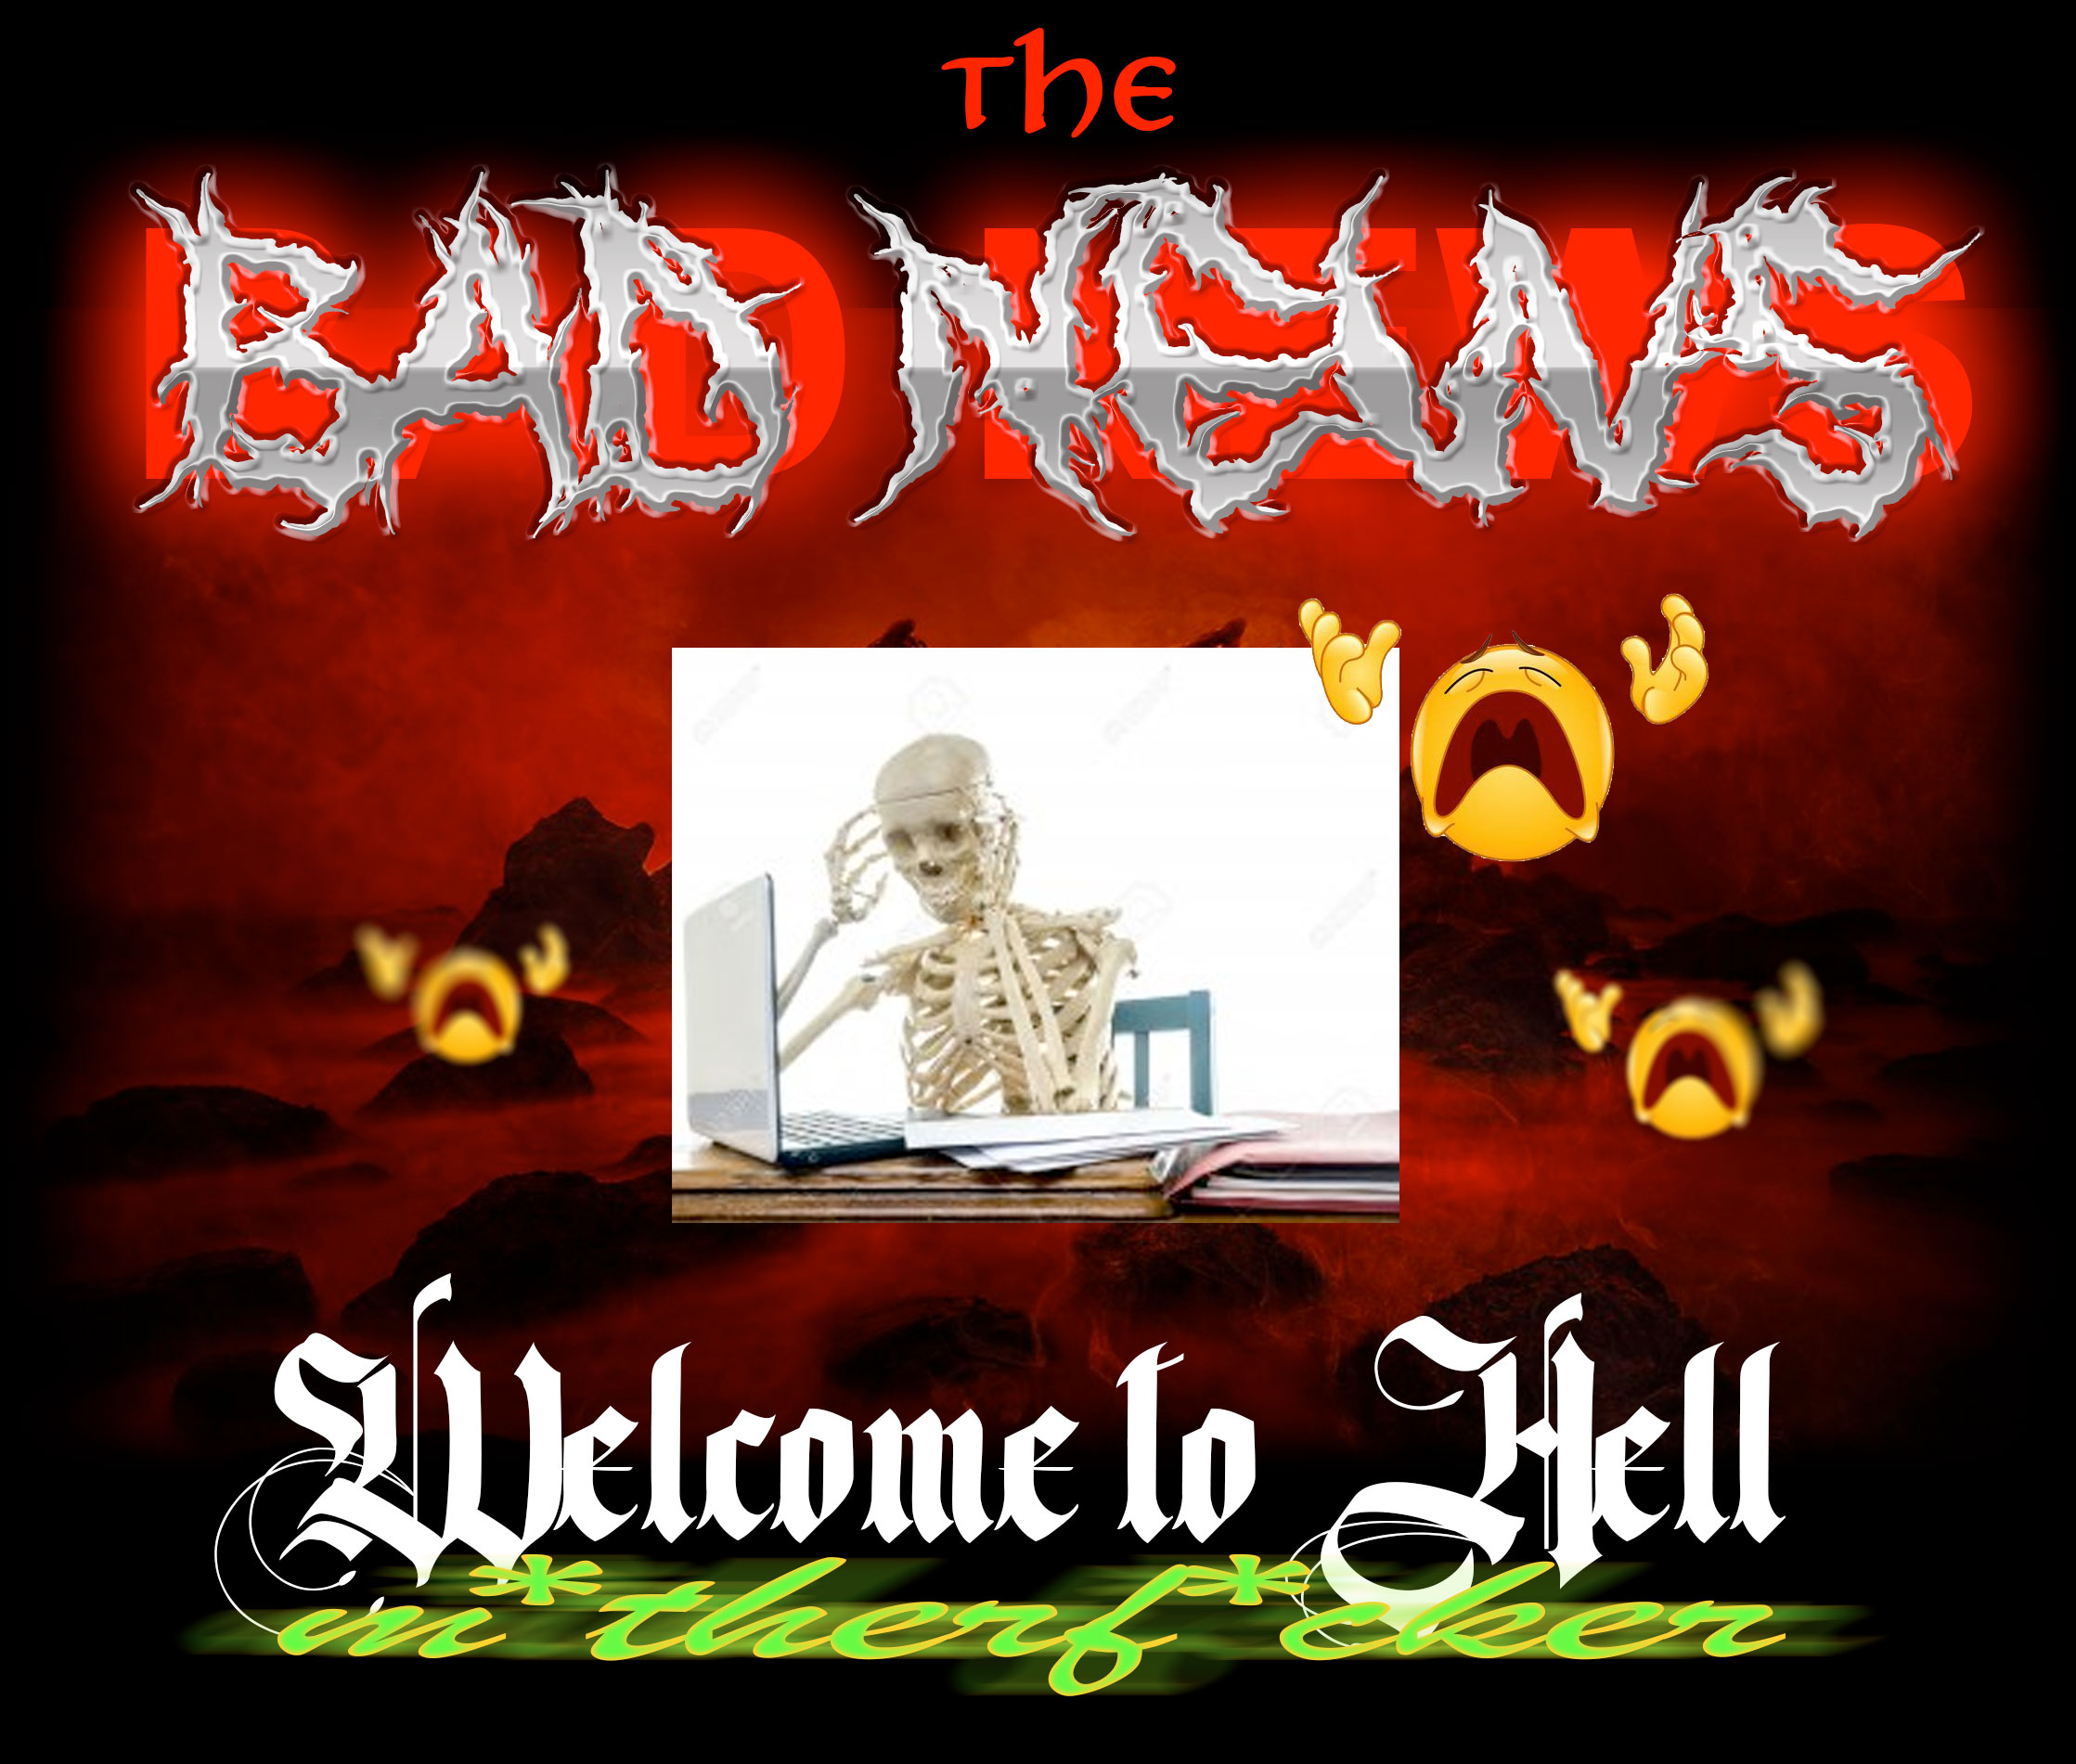 The Bad News Segment